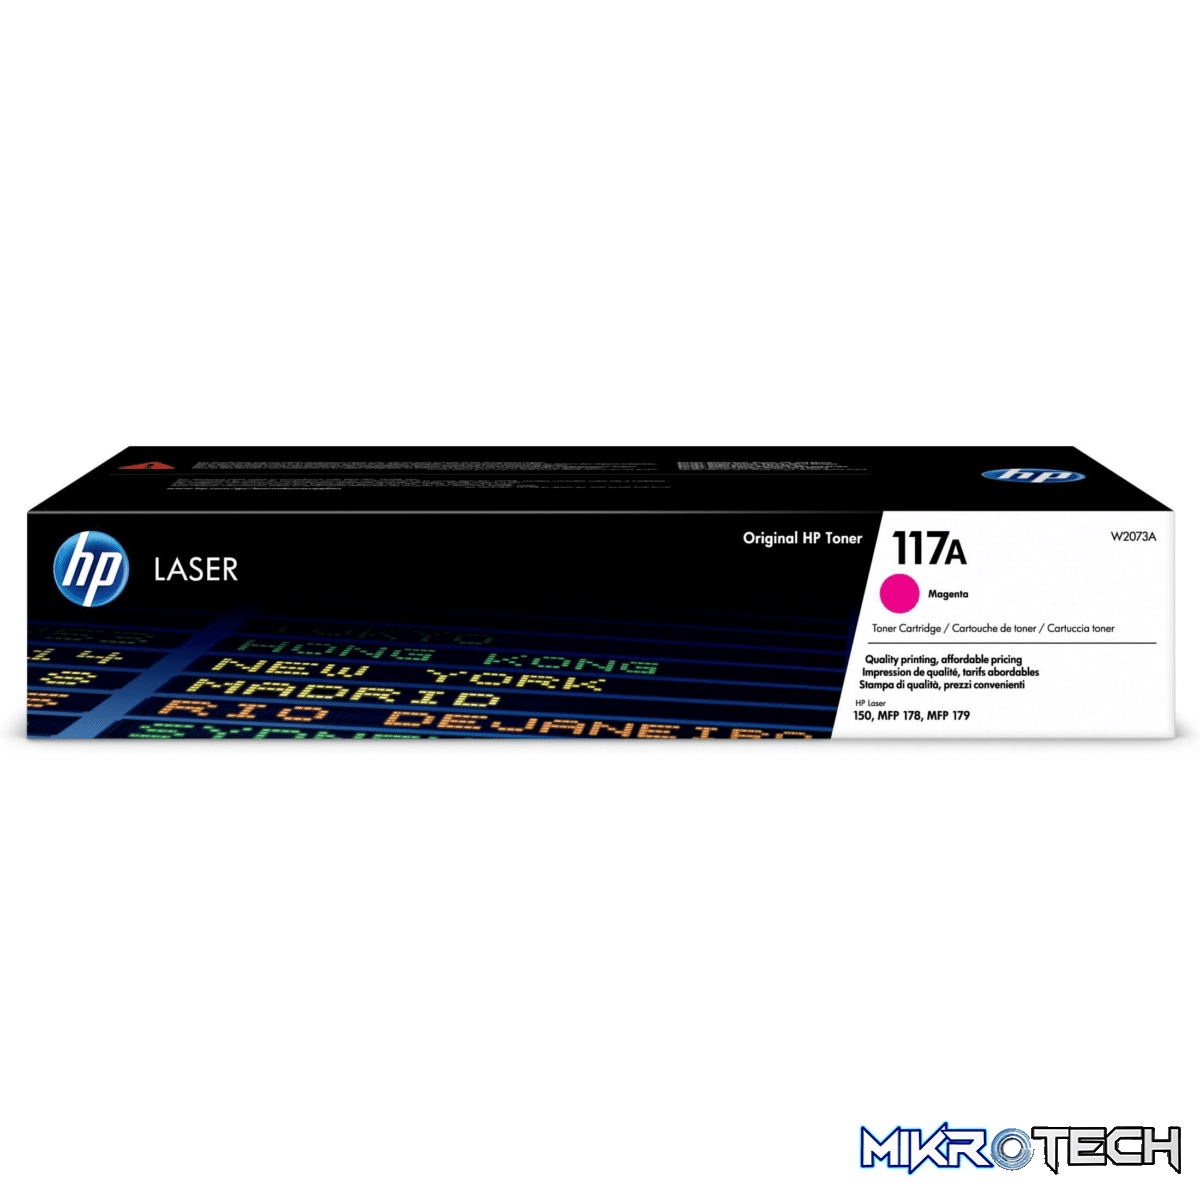 HP 117A Magenta Toner Cartridge 700 Pages Original W2073A Single-pack